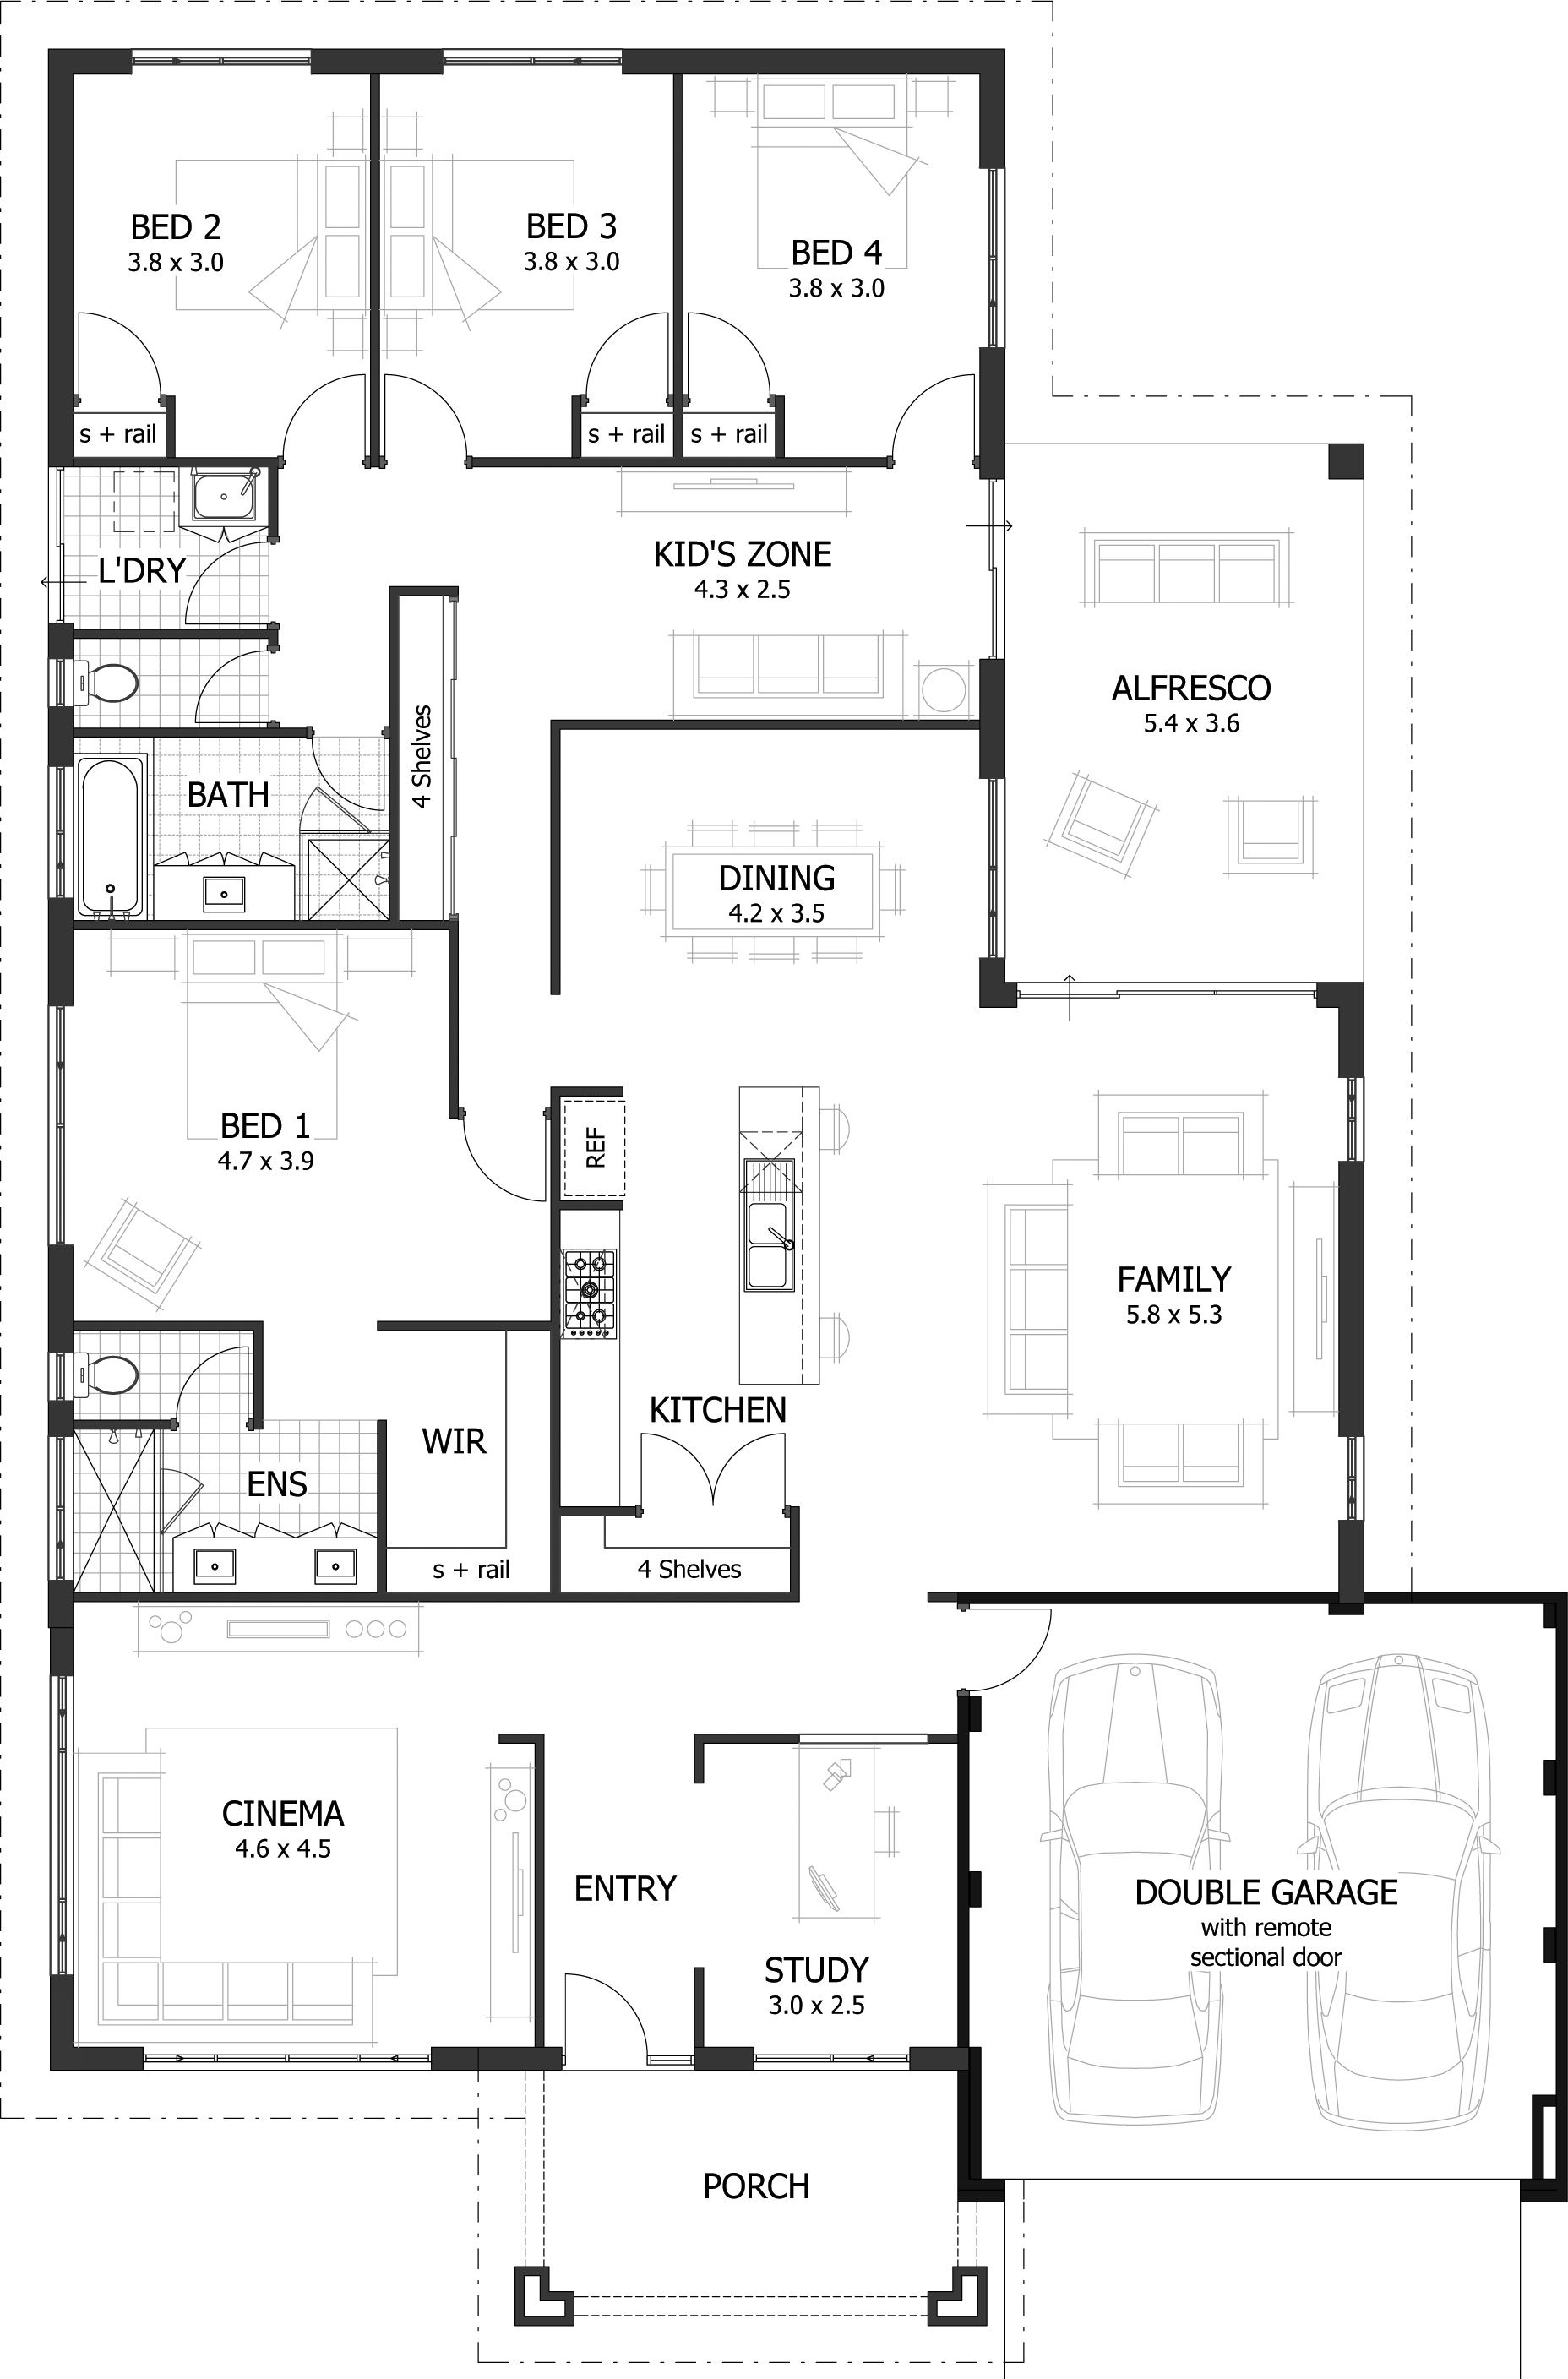 Delightful 4 Bedroom House Plans U0026 Home Designs | Celebration Homes